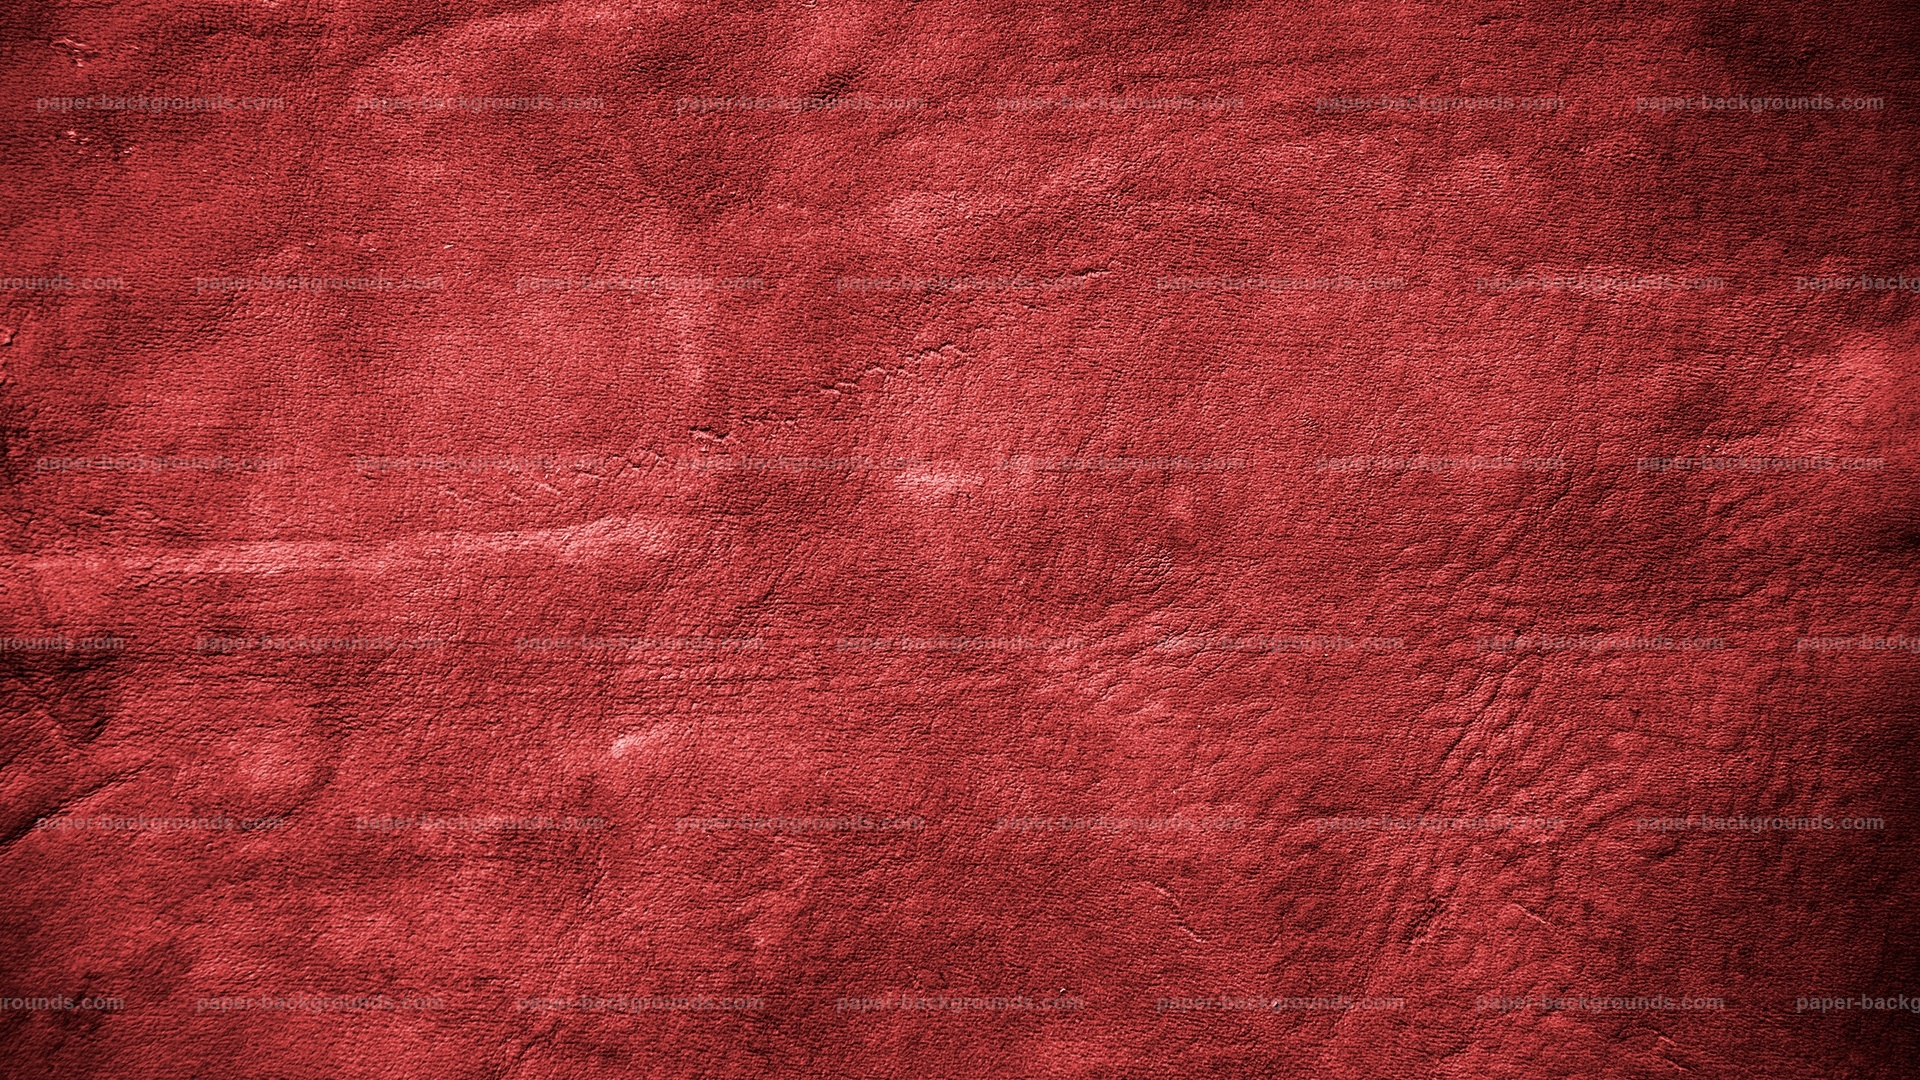 Paper Backgrounds Vintage Red Soft Leather Texture